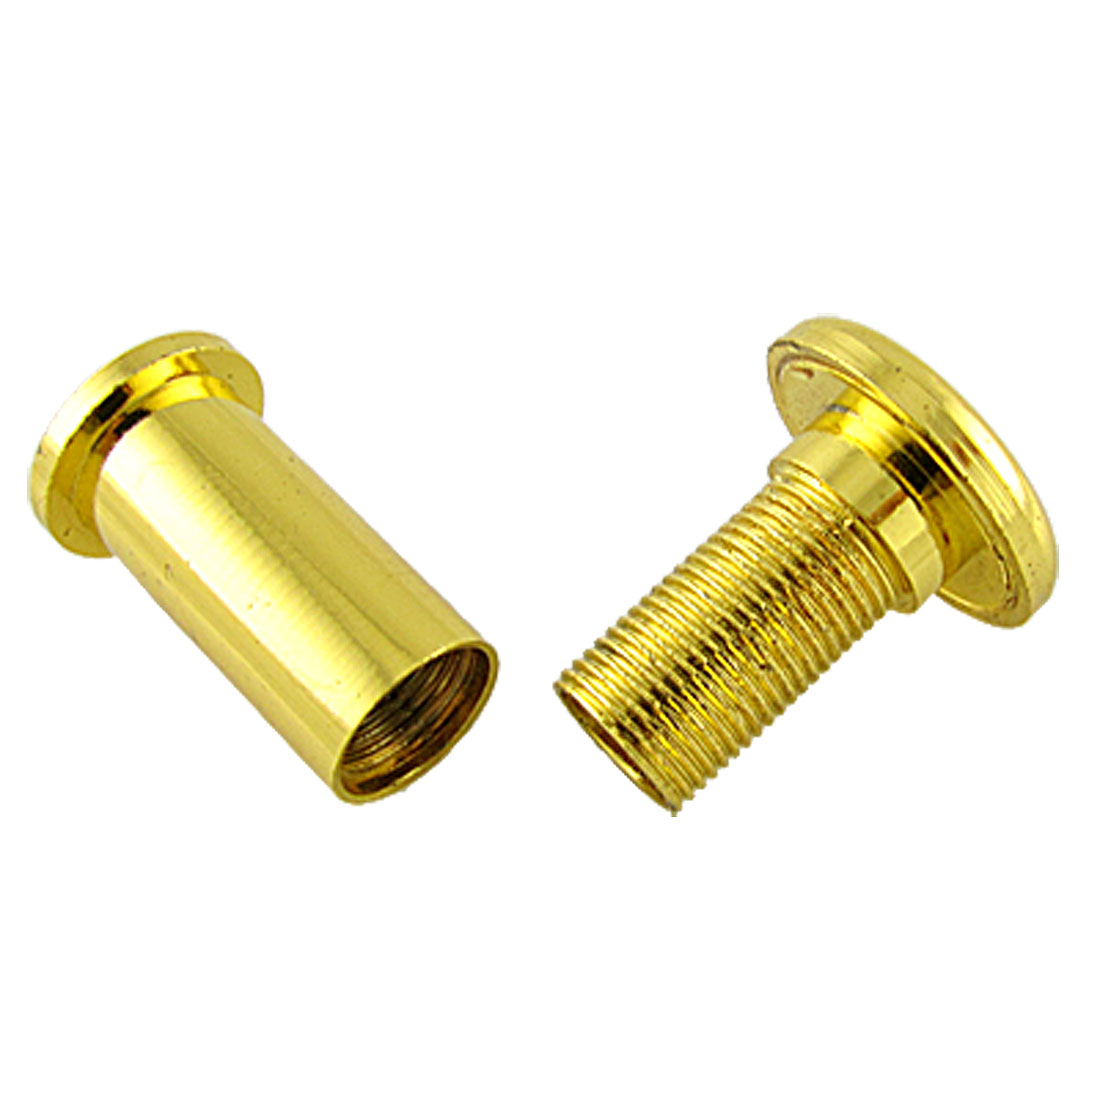 Home Safety Gold Tone 180 Angle Door Viewer Peep Hole